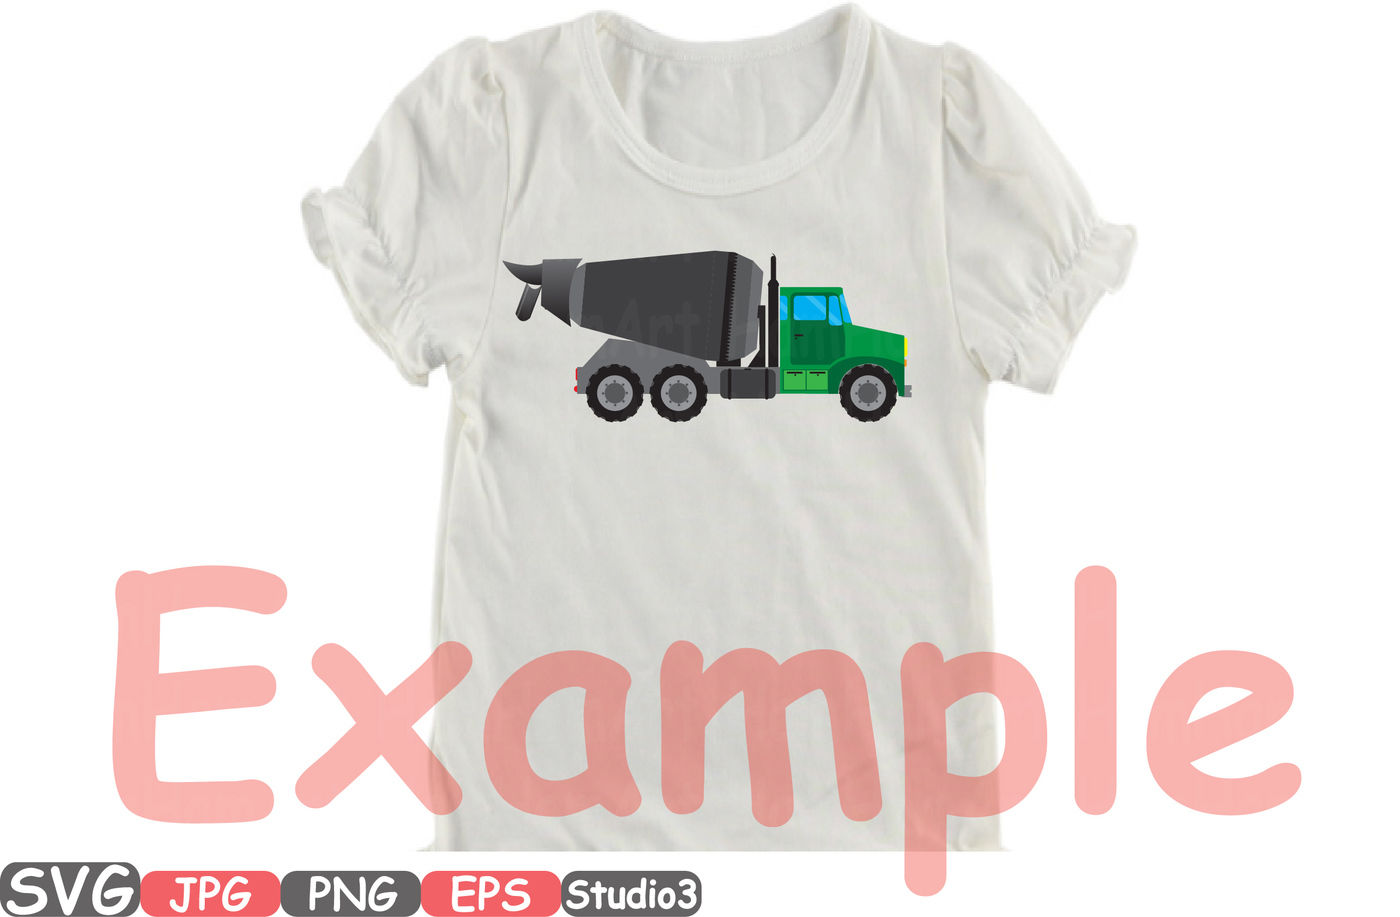 Construction Machines Silhouette Svg Cutting Files Digital Clip